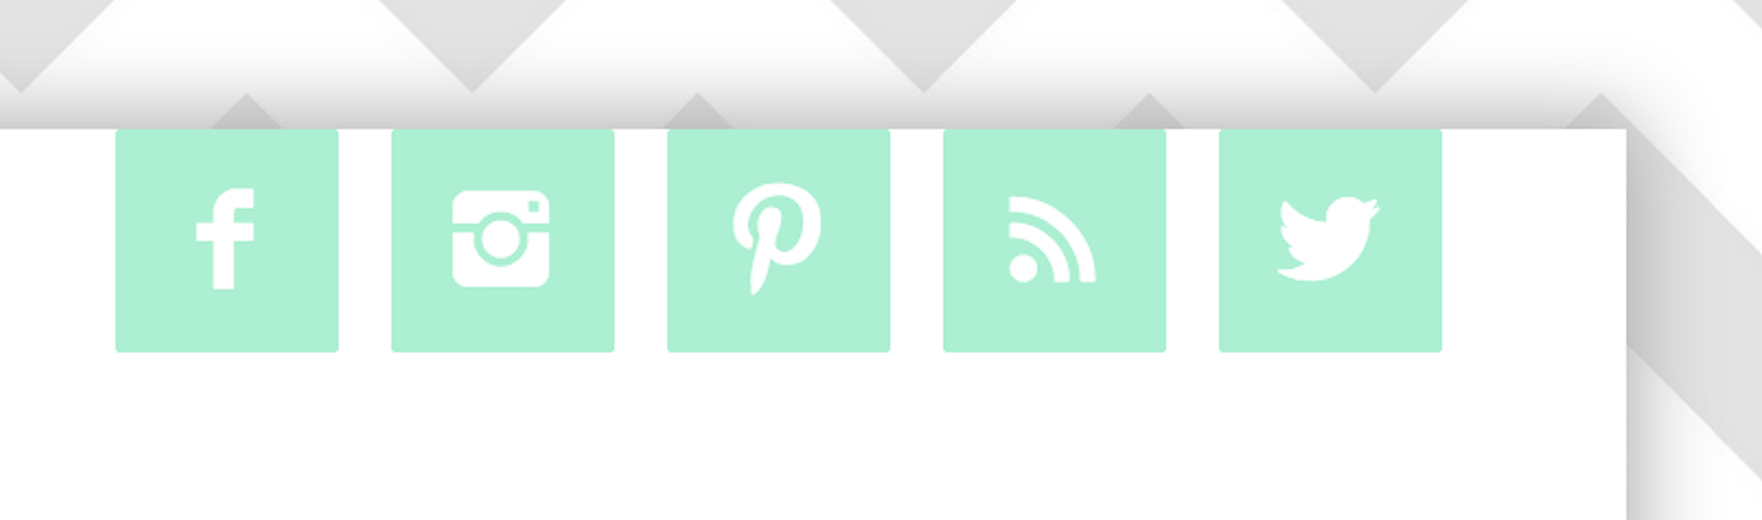 Before.  Generic social icons. Fine, but a little hard to see with white on mint.